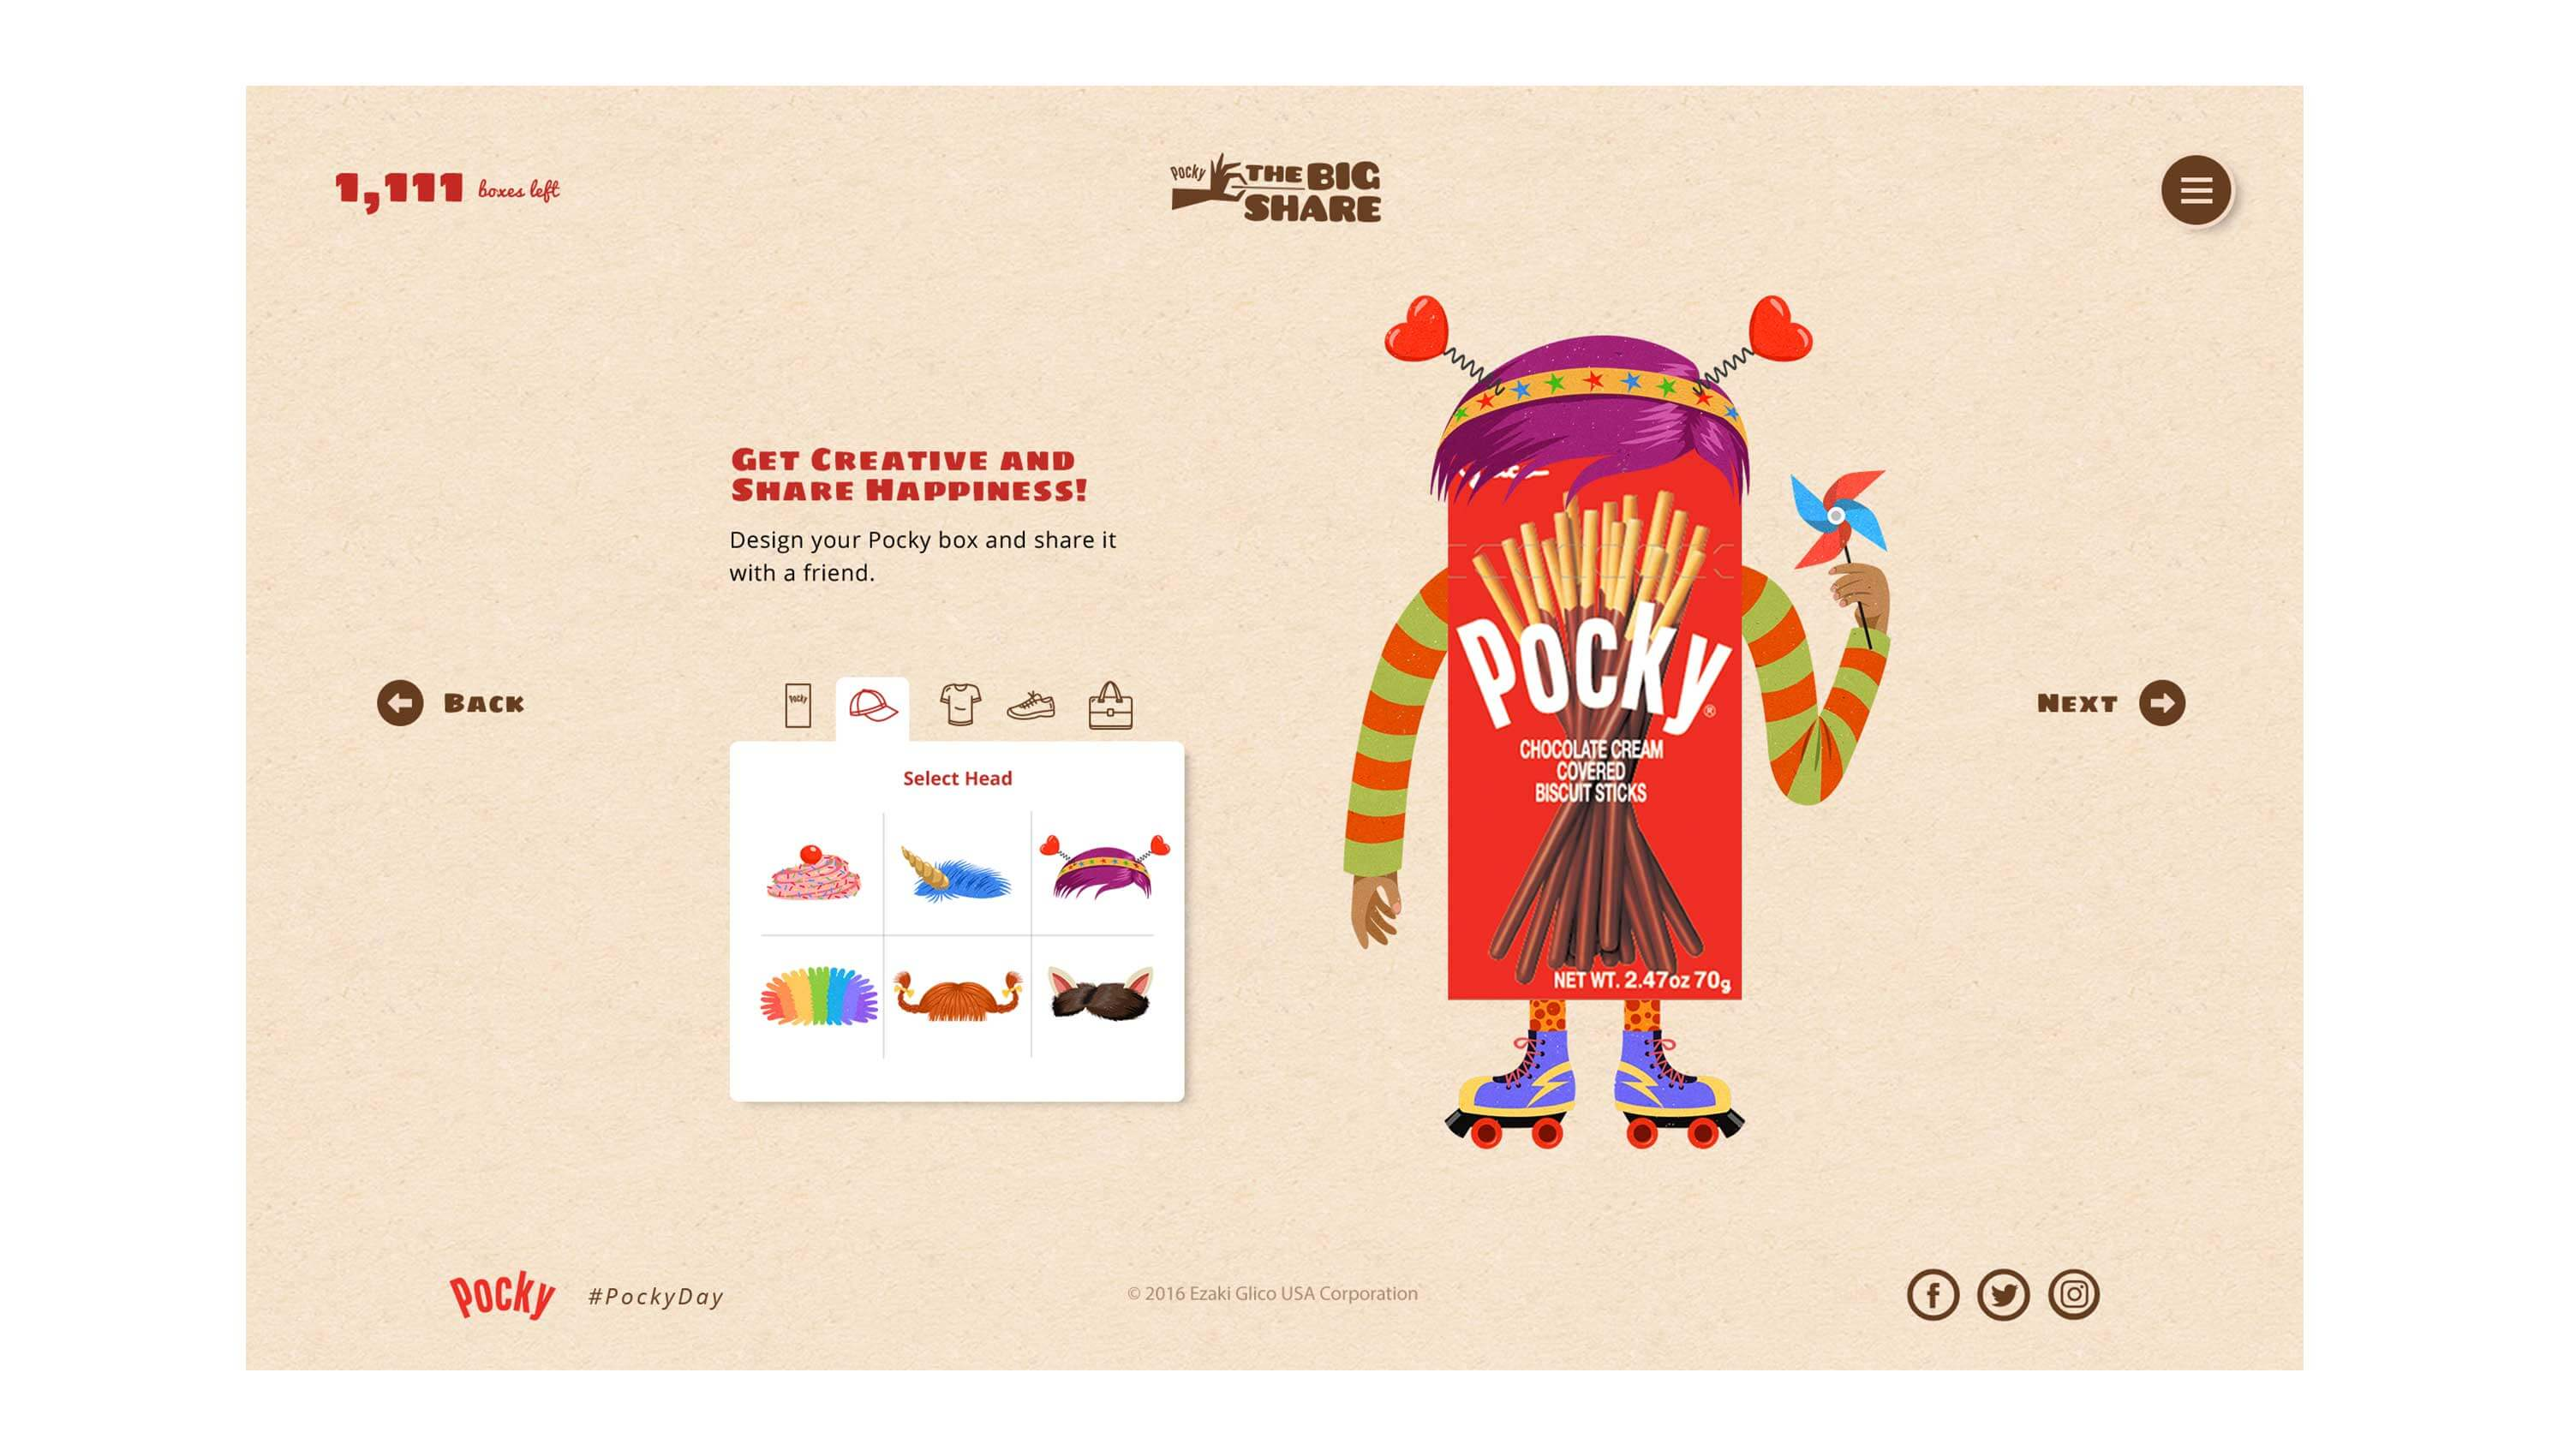 Pocky Day microsite create a character